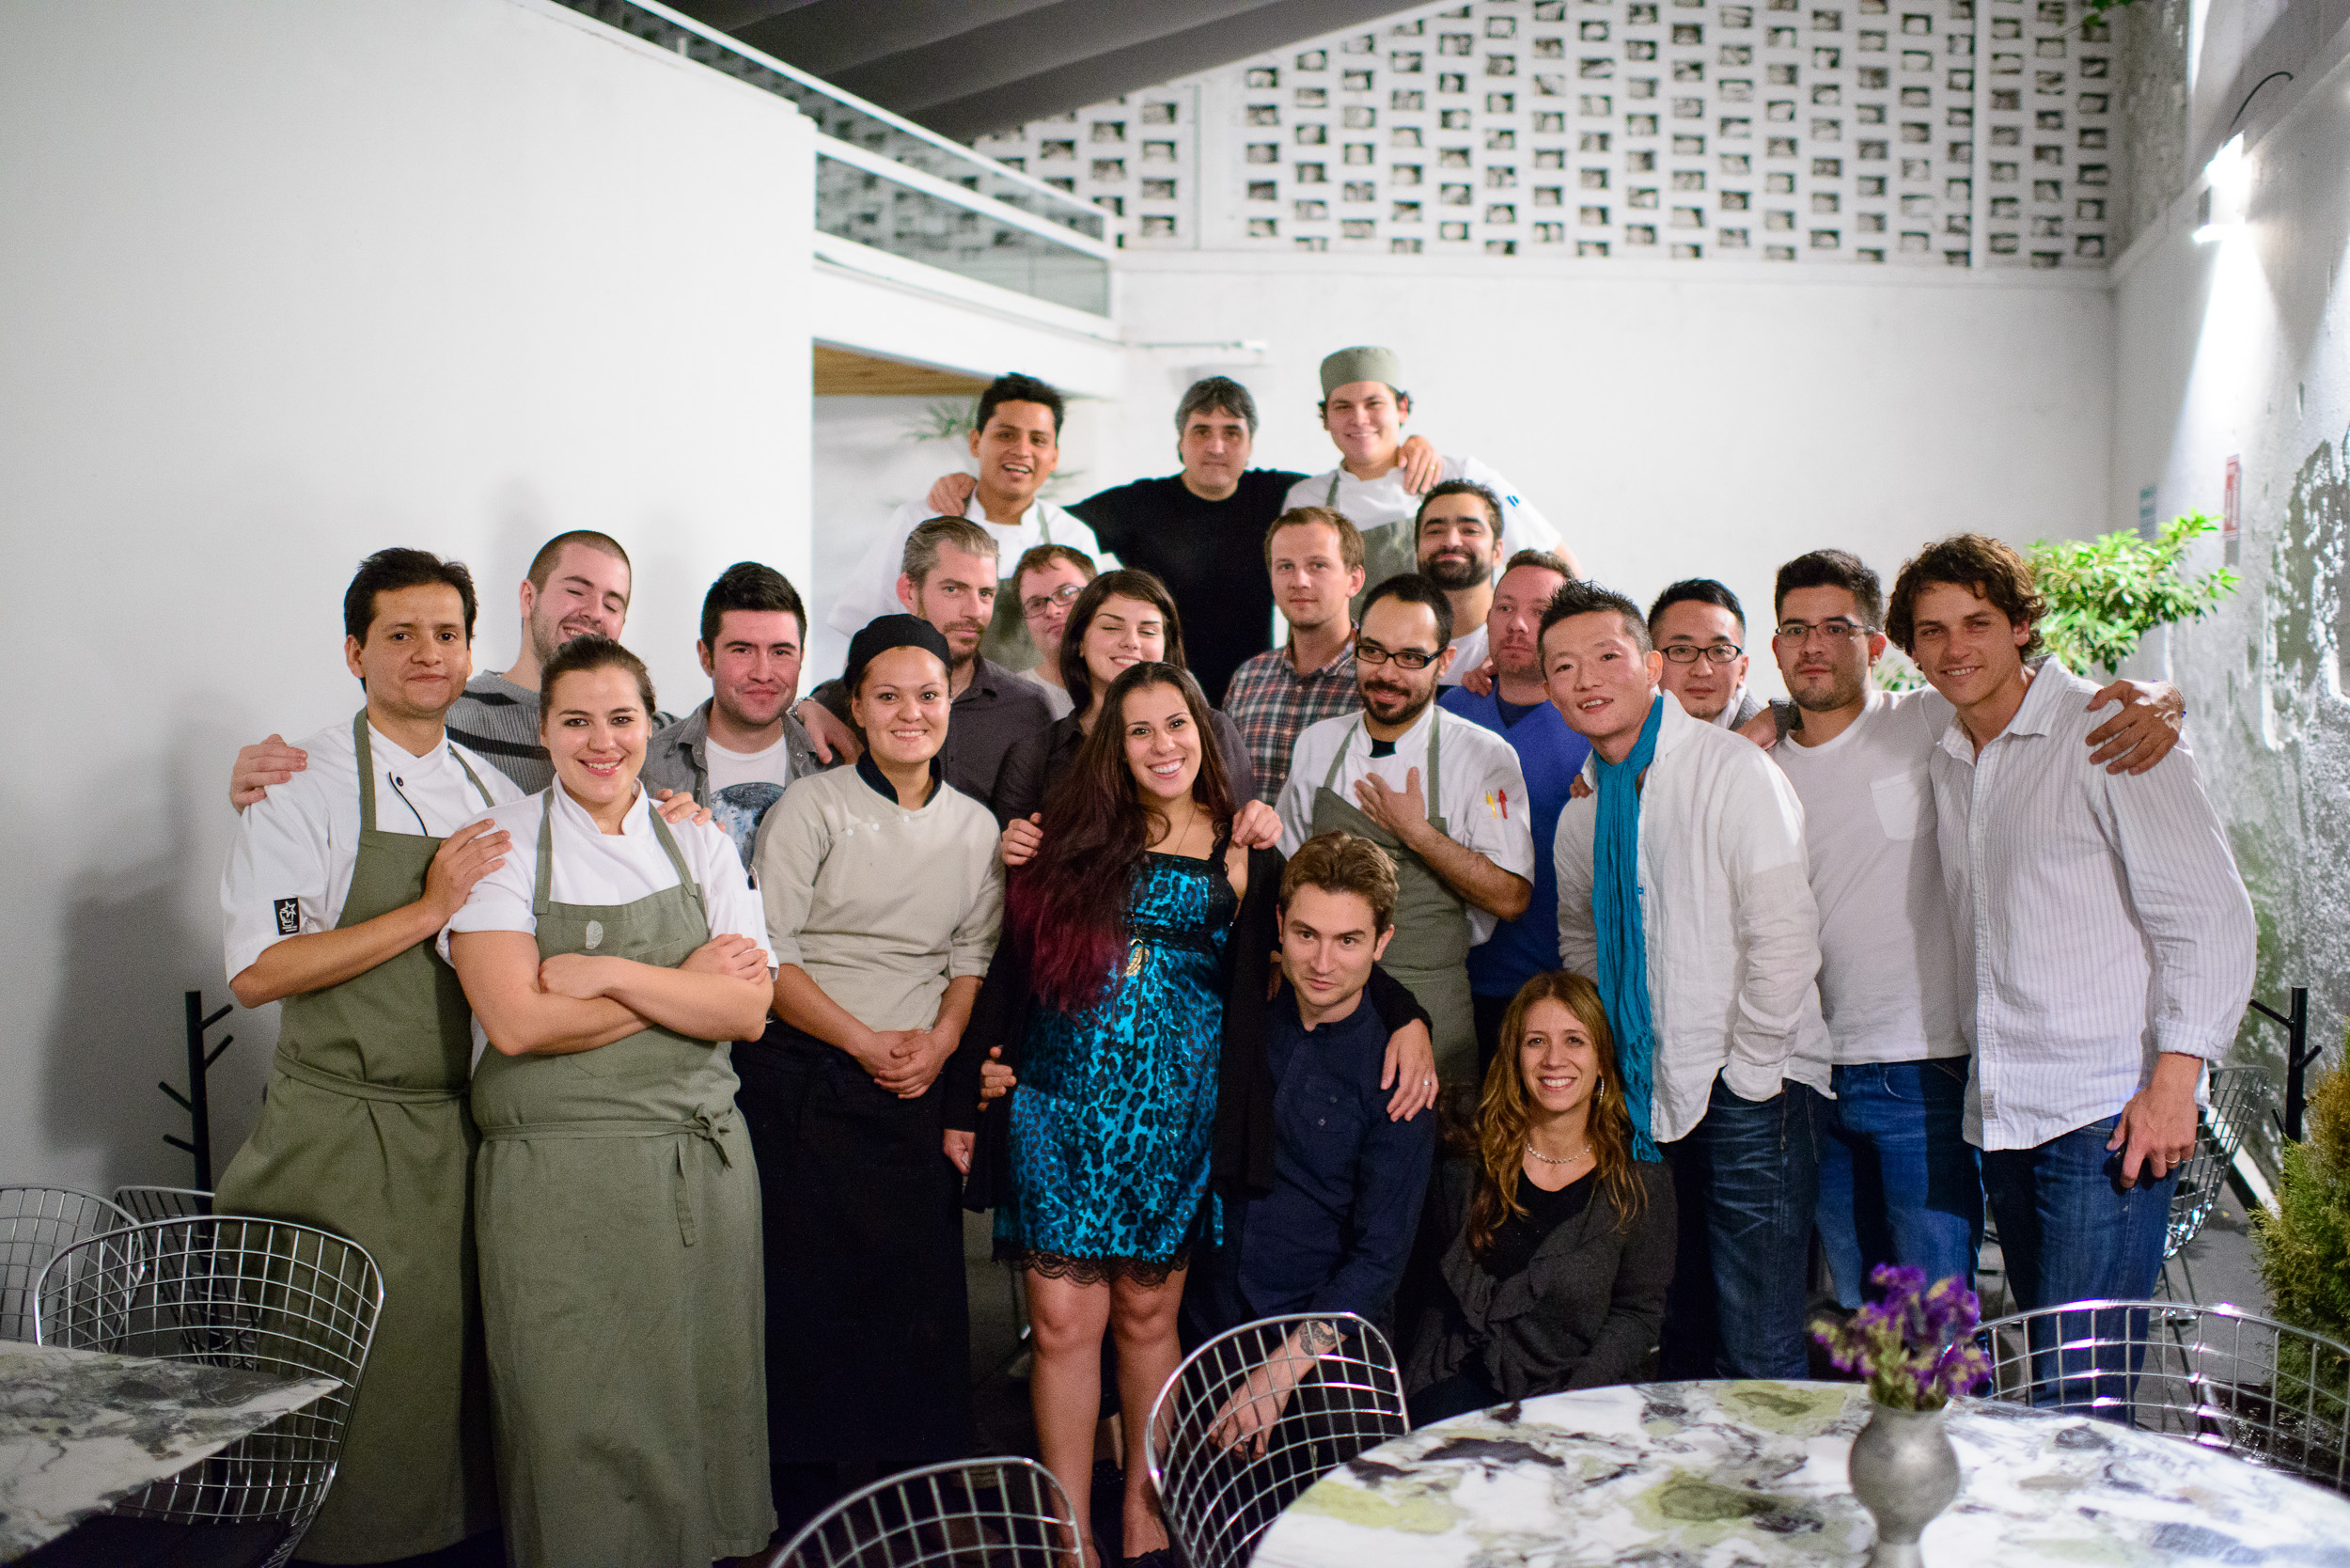 Staff of Quintonil with visiting chefs for Mesamerica 2012